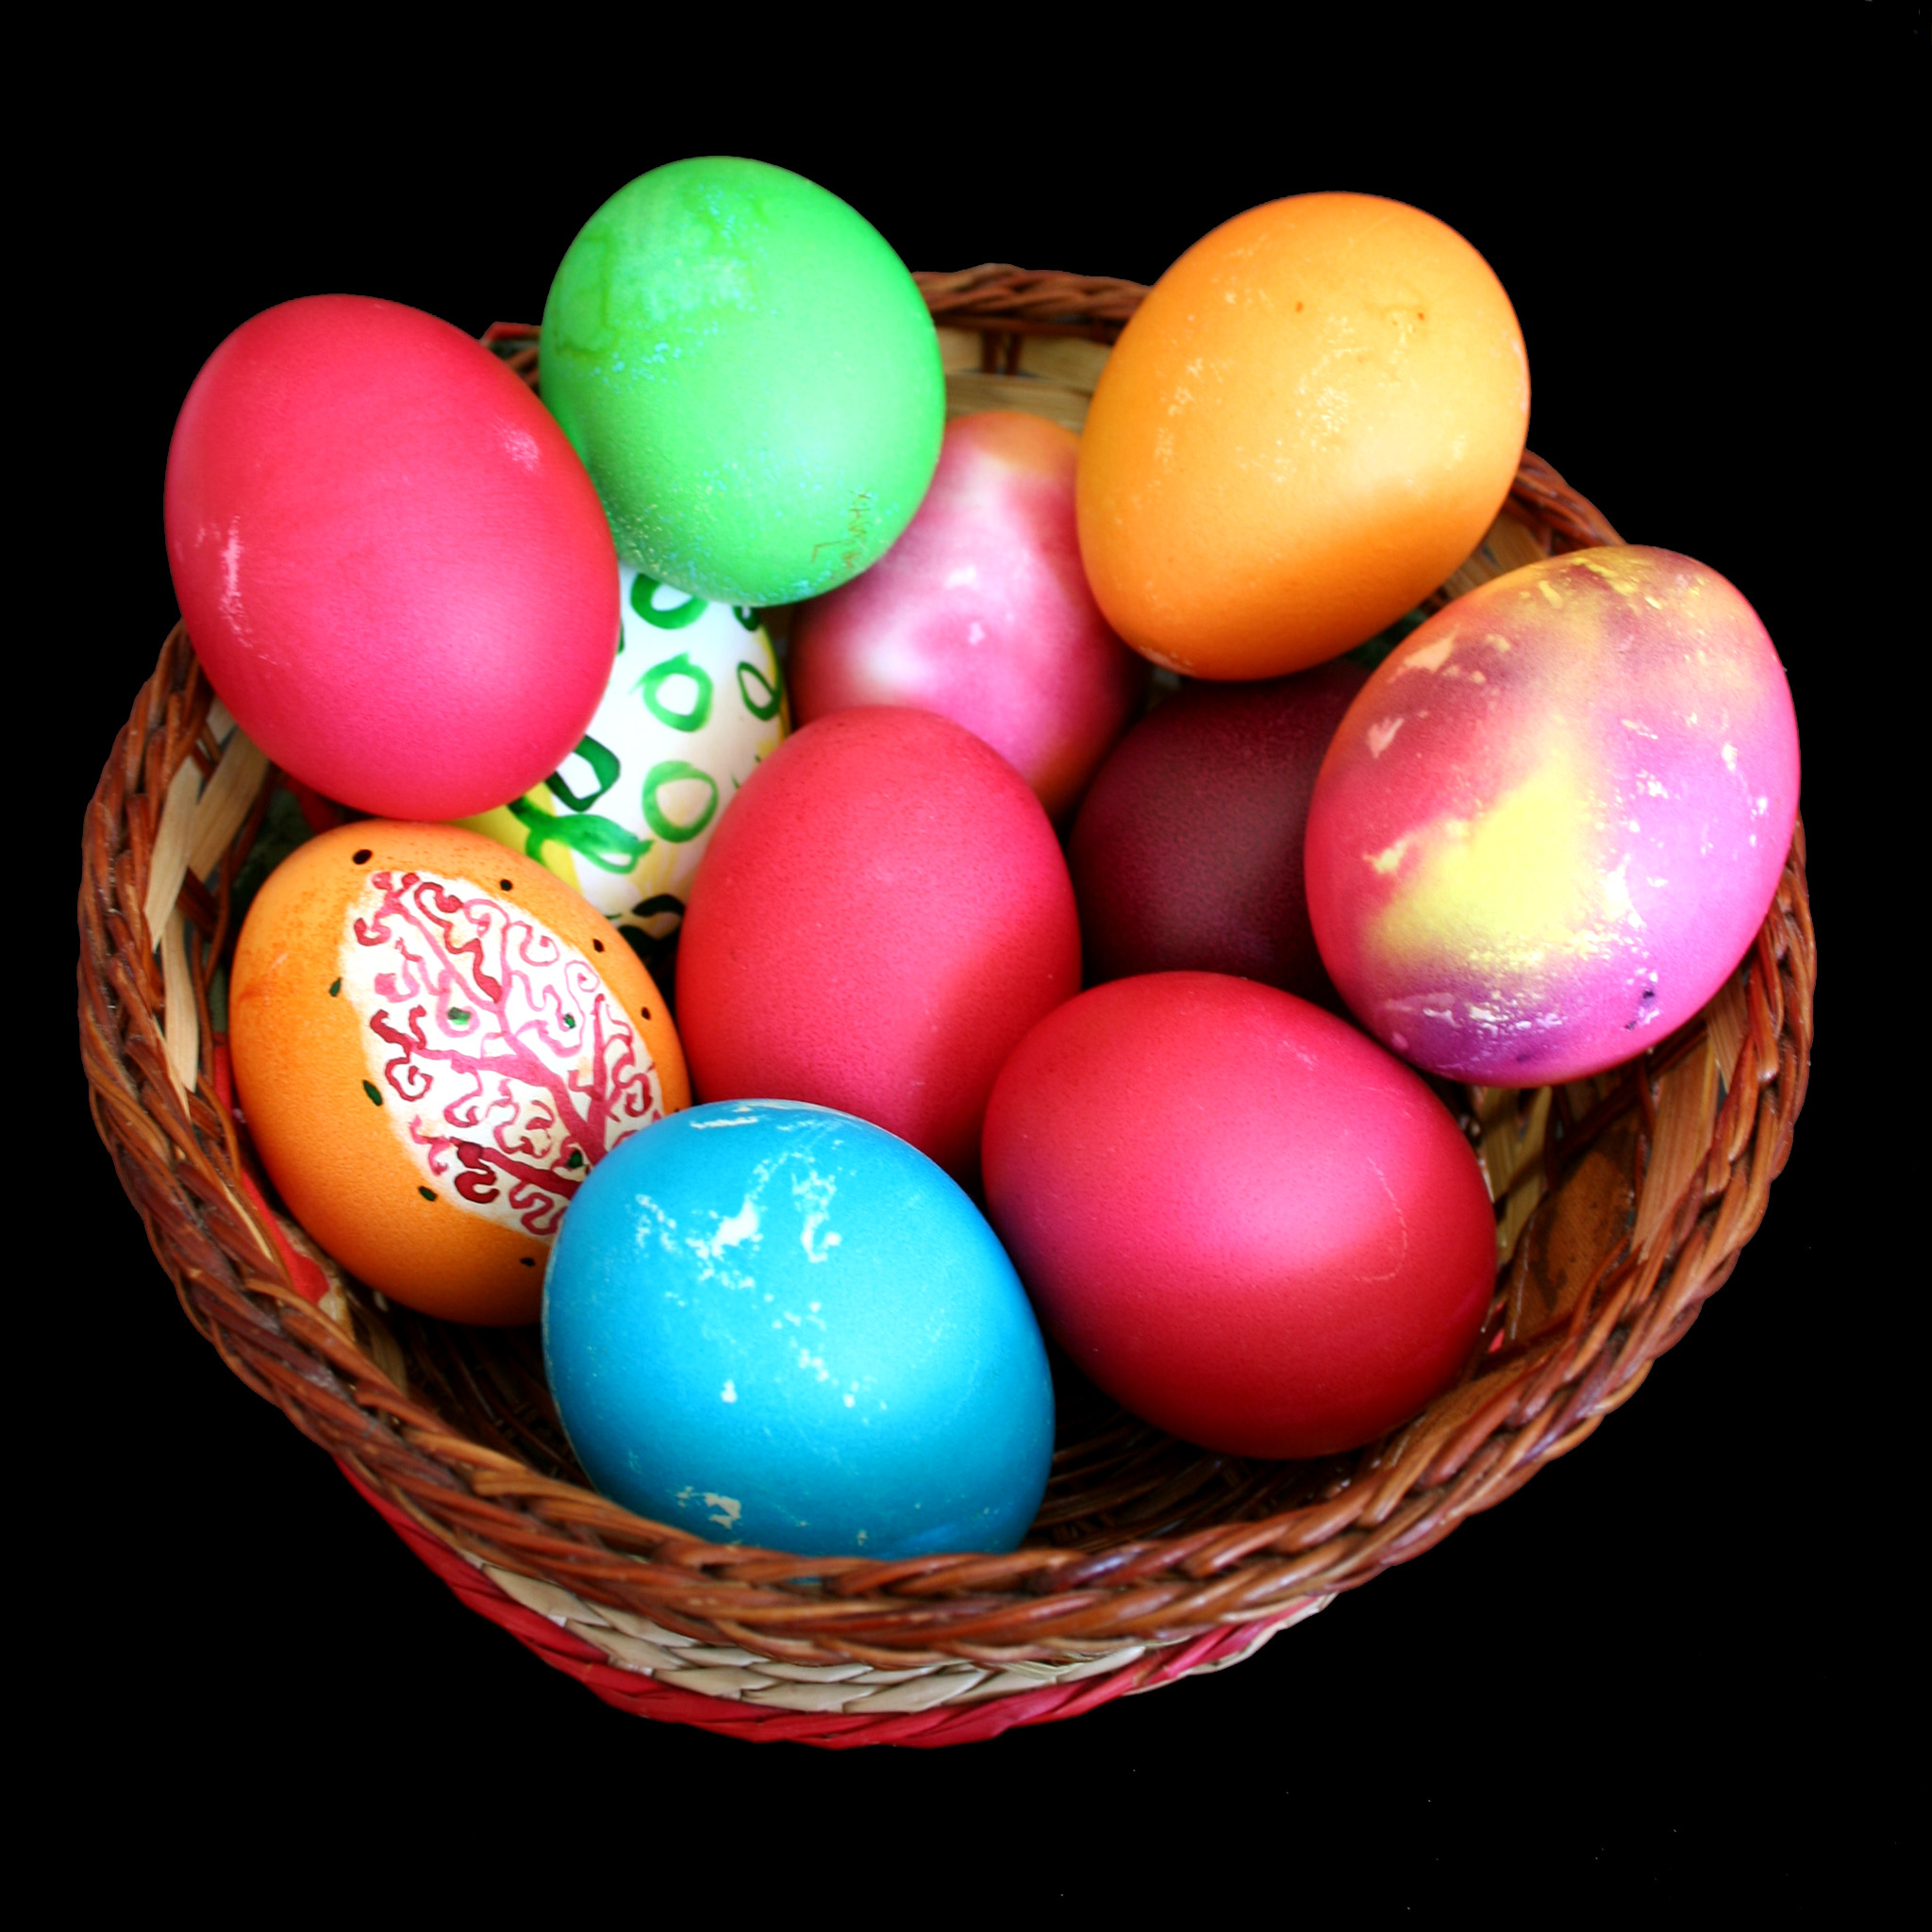 Easter Eggs in Basket Wallpaper